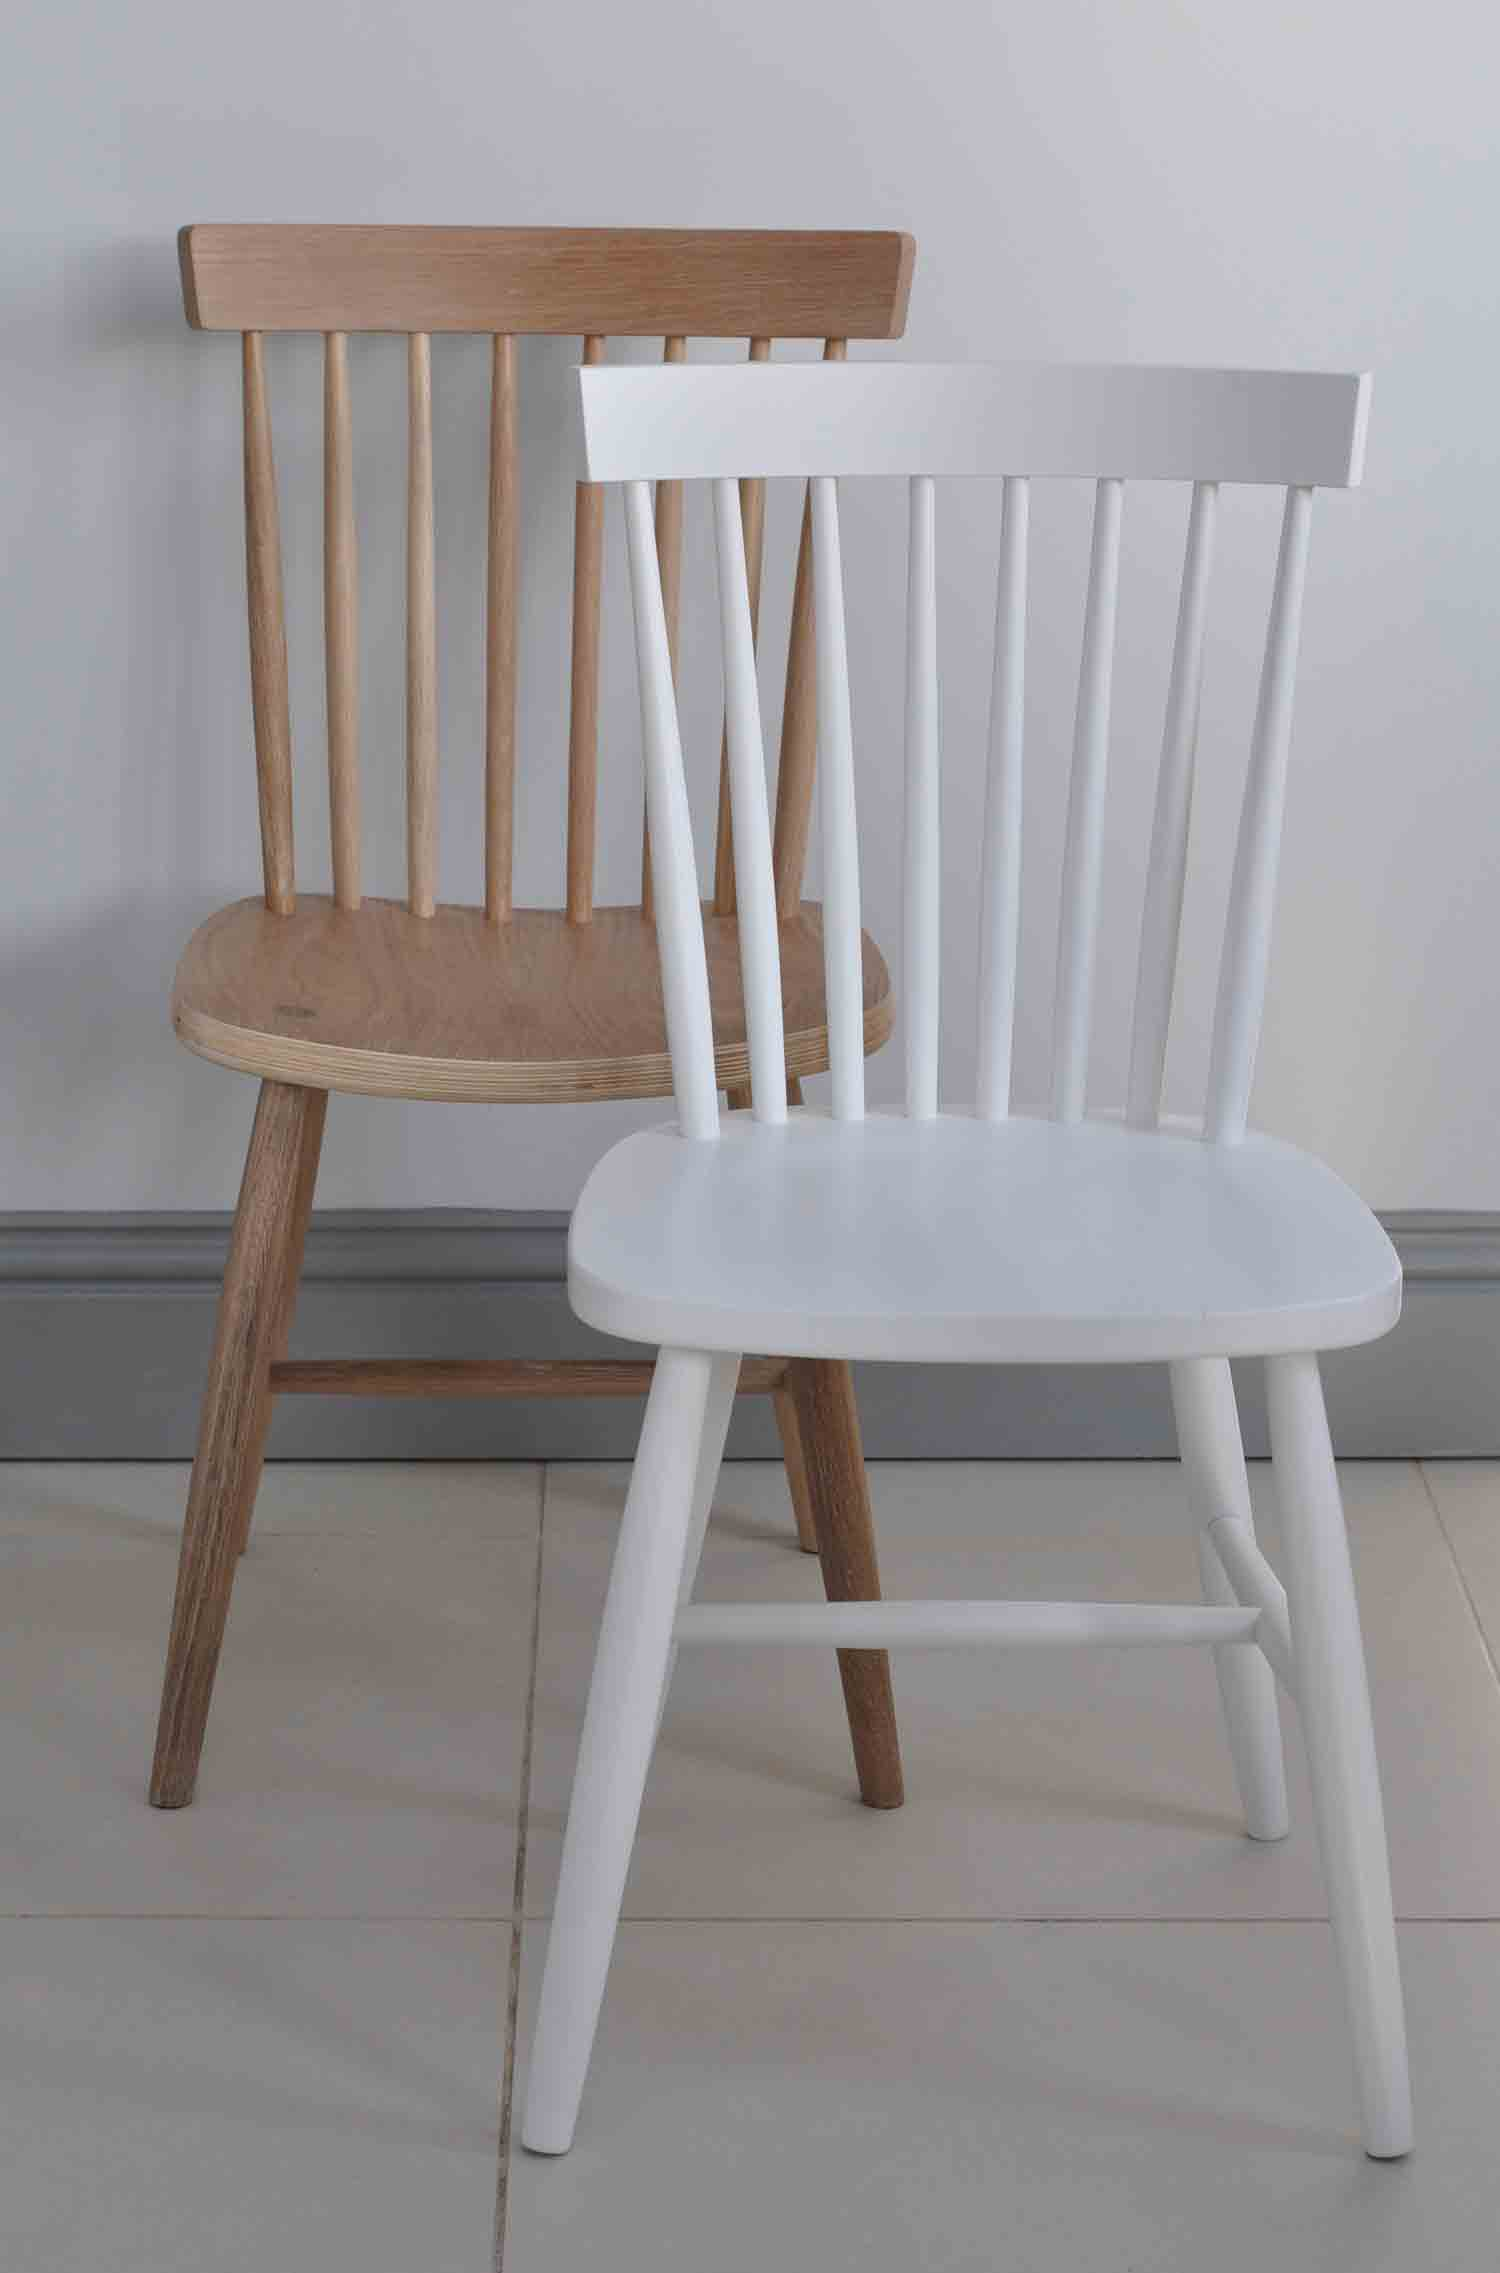 White Wooden Dining Chairs Oxford Spindle Back Dining Chair In White Painted Or Natural Oak